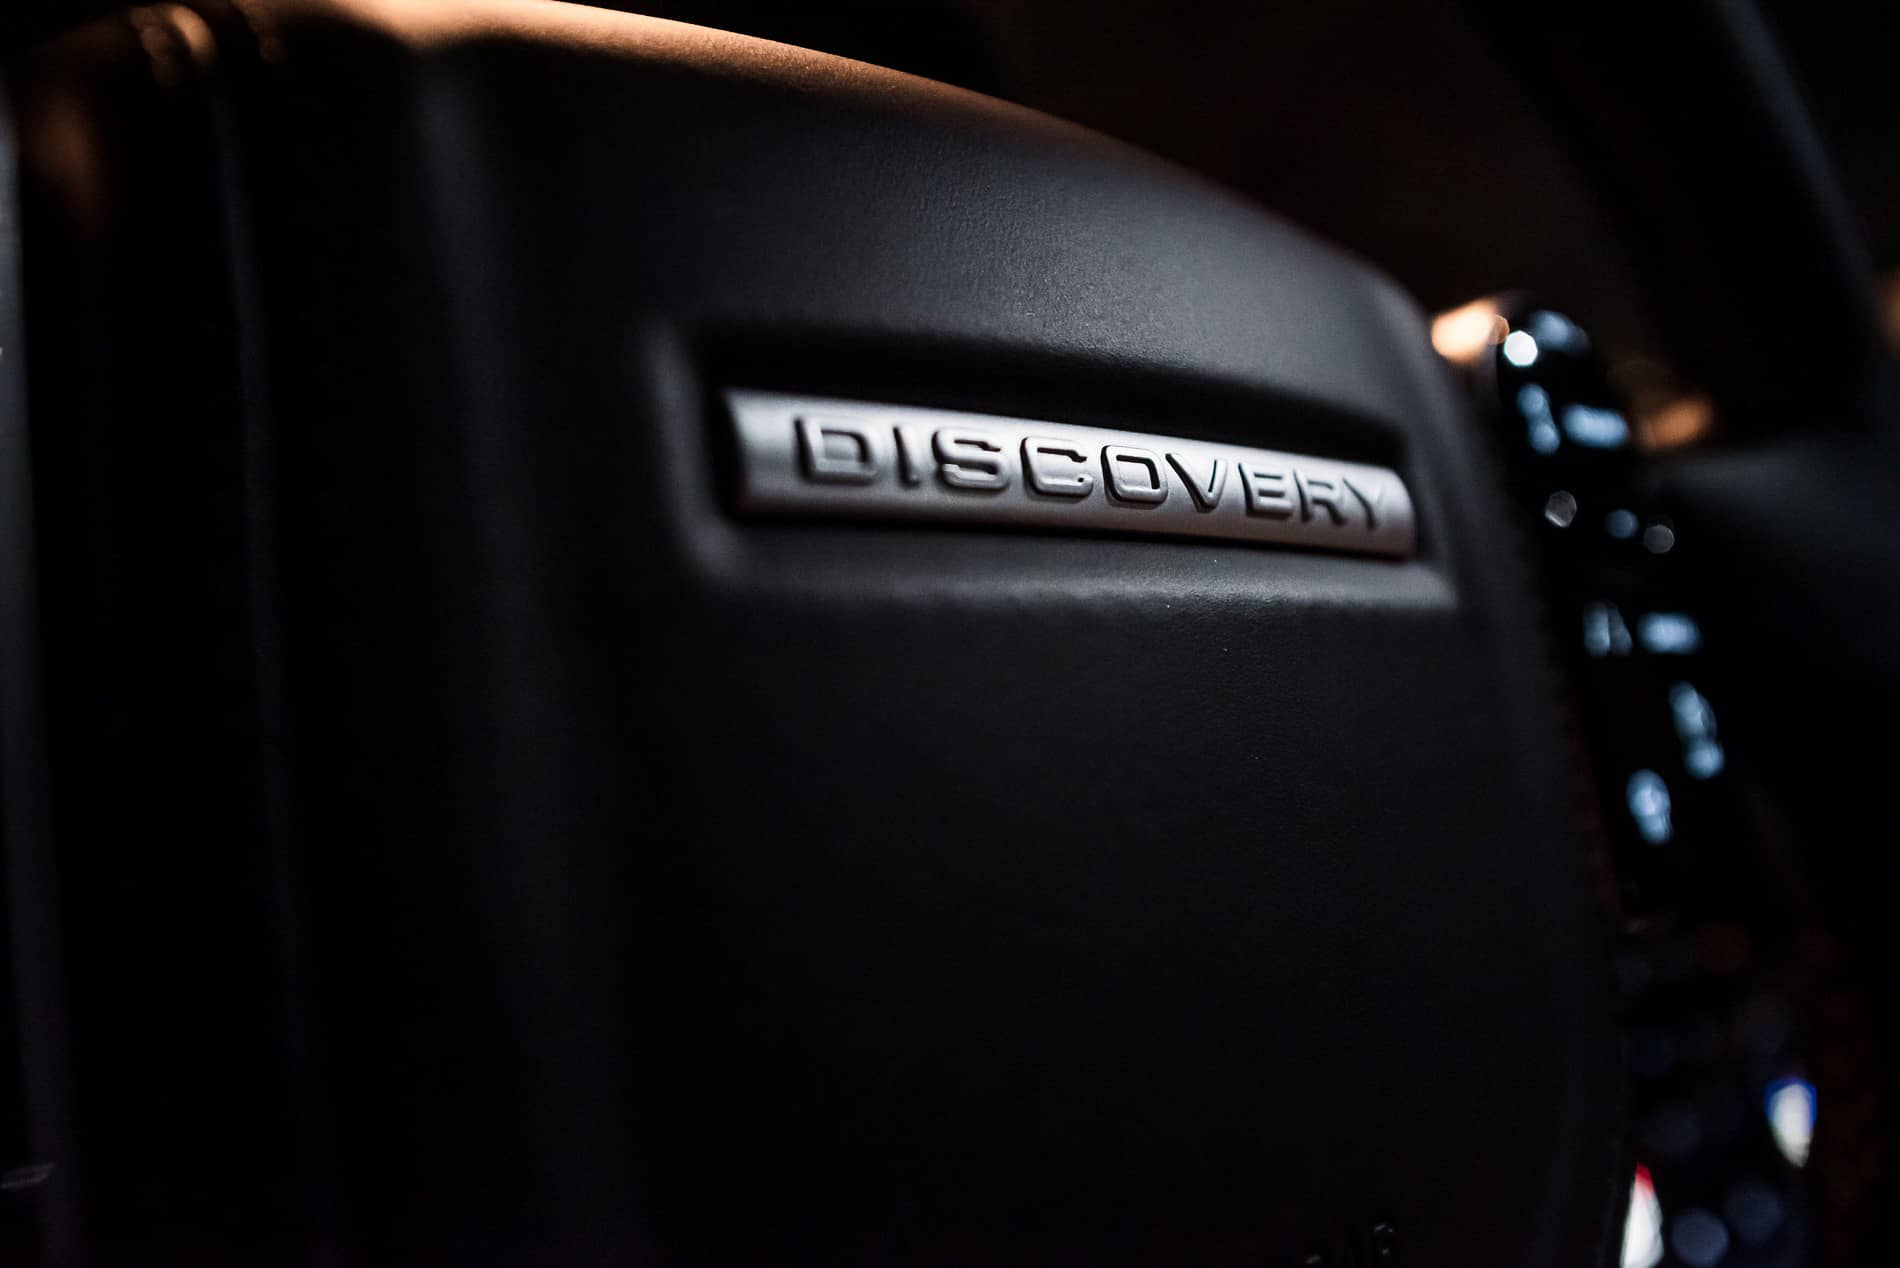 land rover discovery 2020 (16)